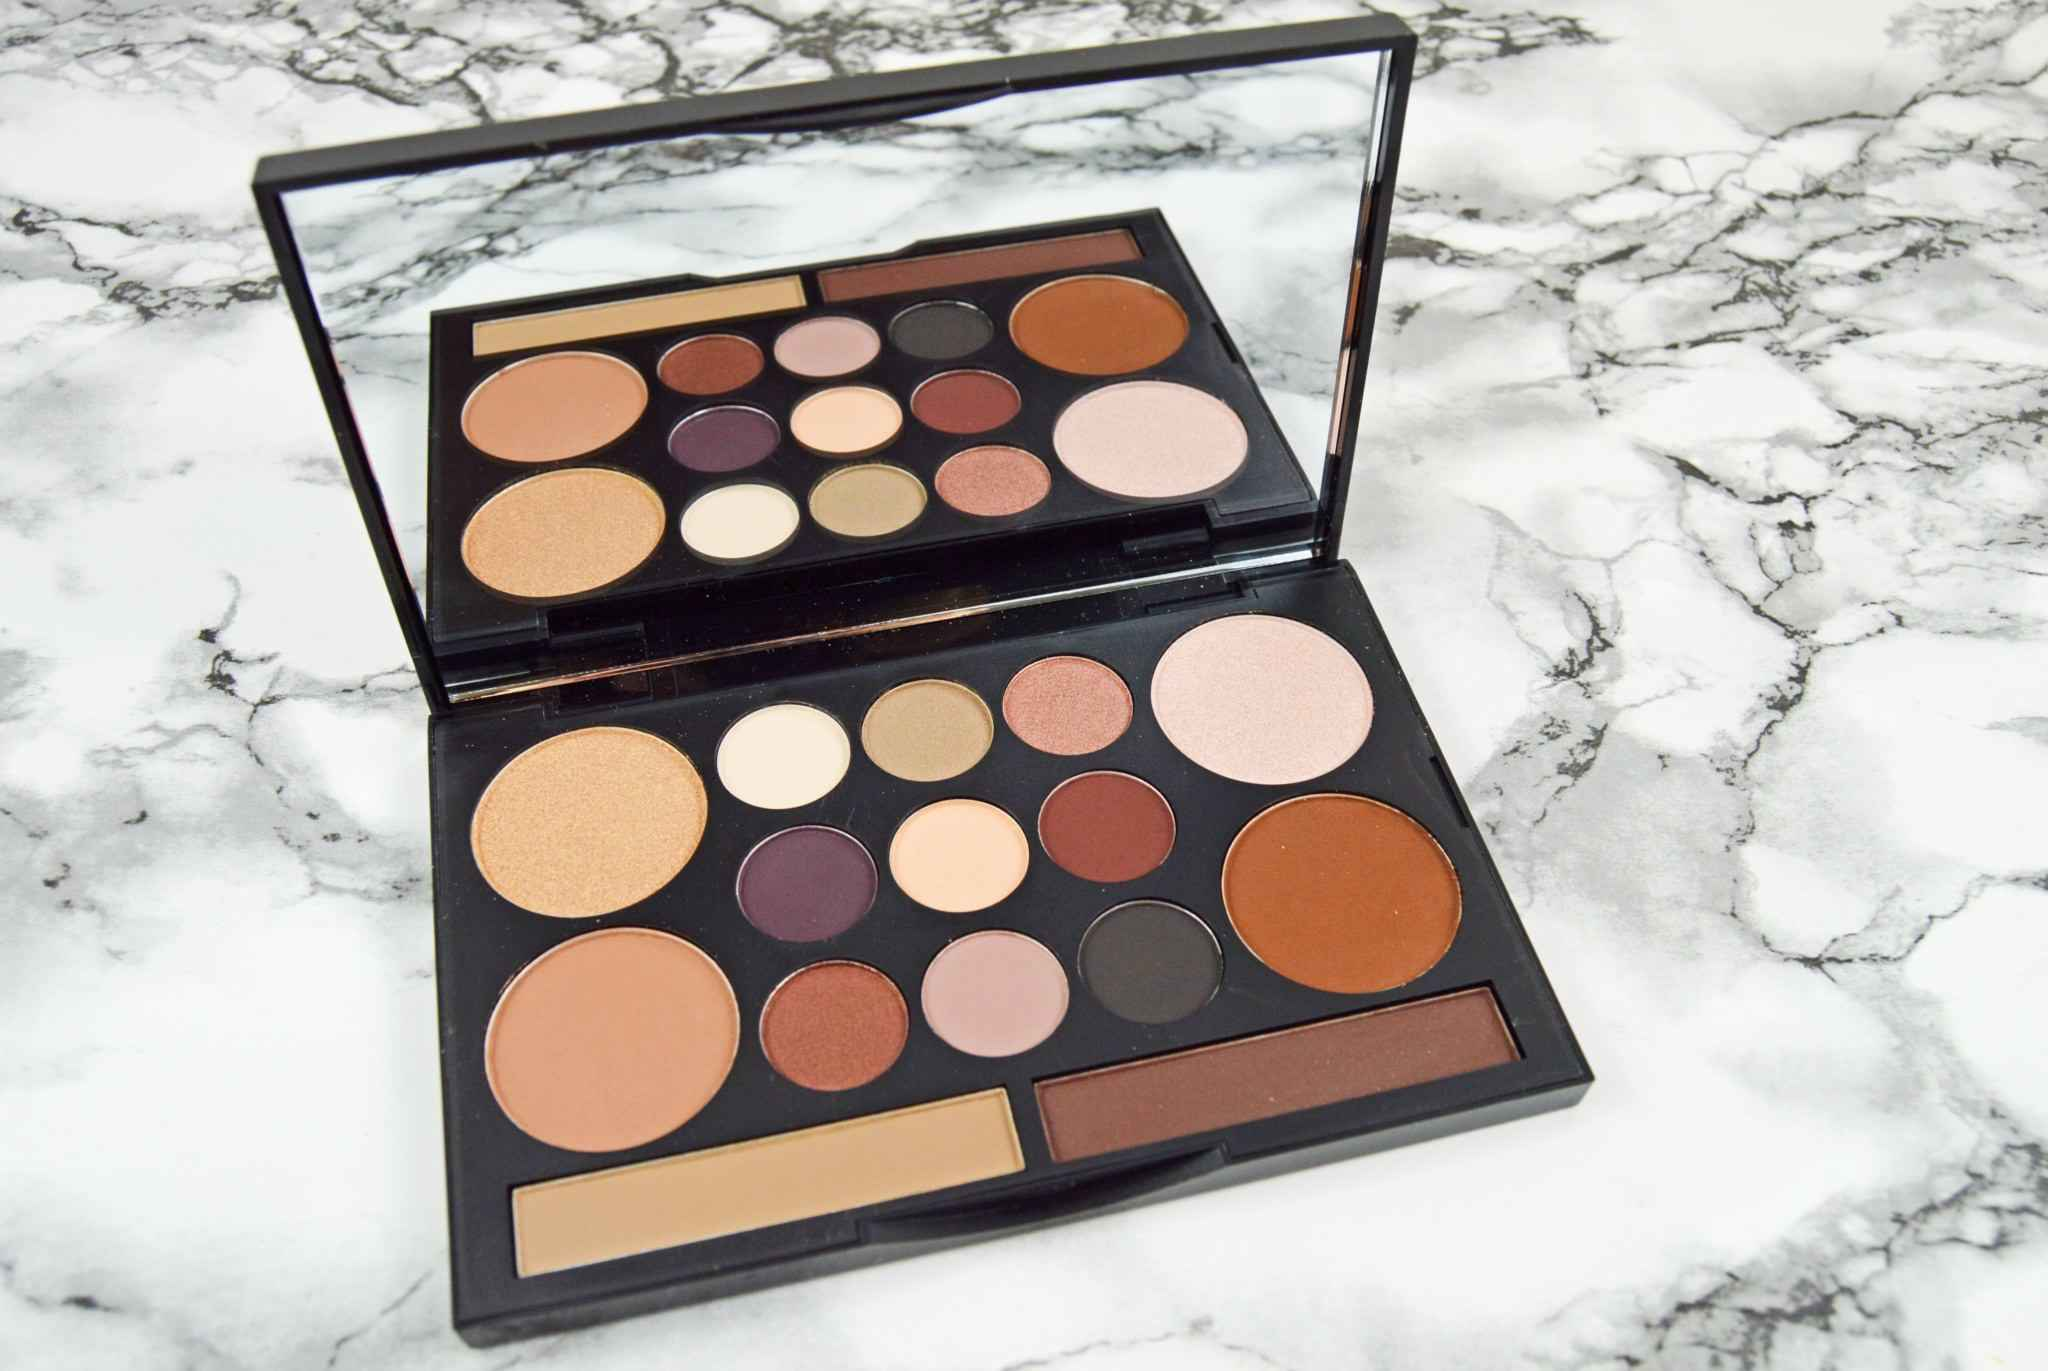 NYX - Love Contours All